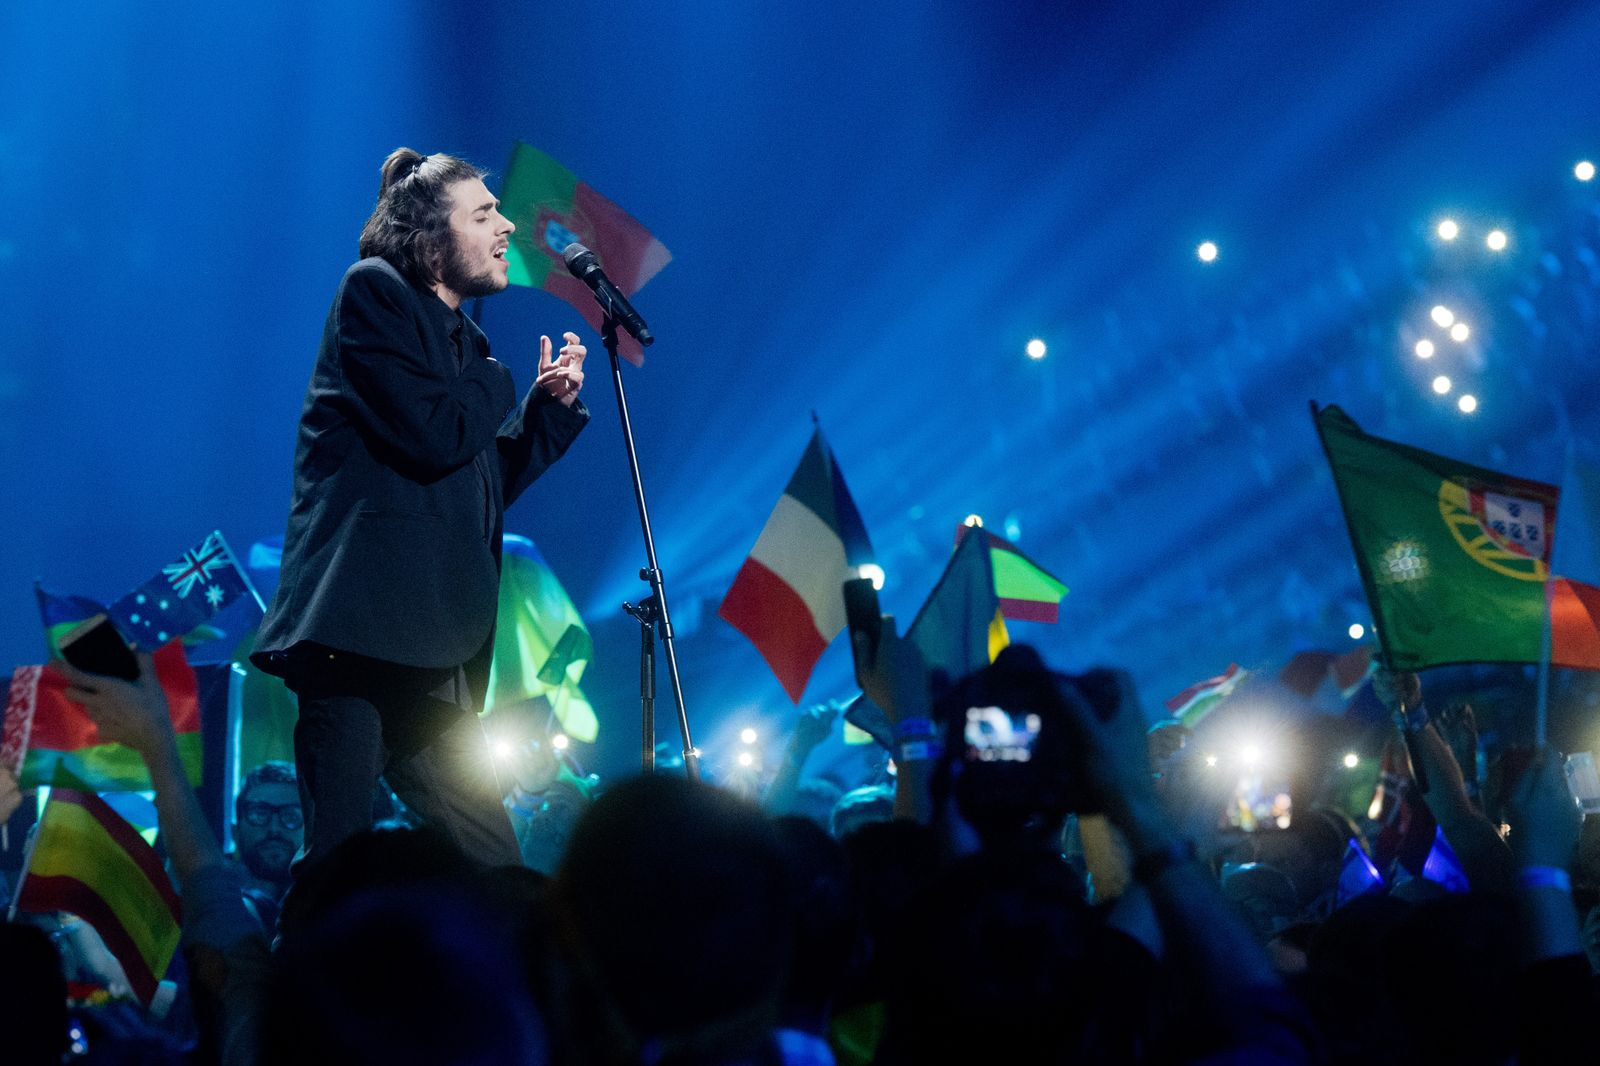 Finale of the 62nd Eurovision Song Contest